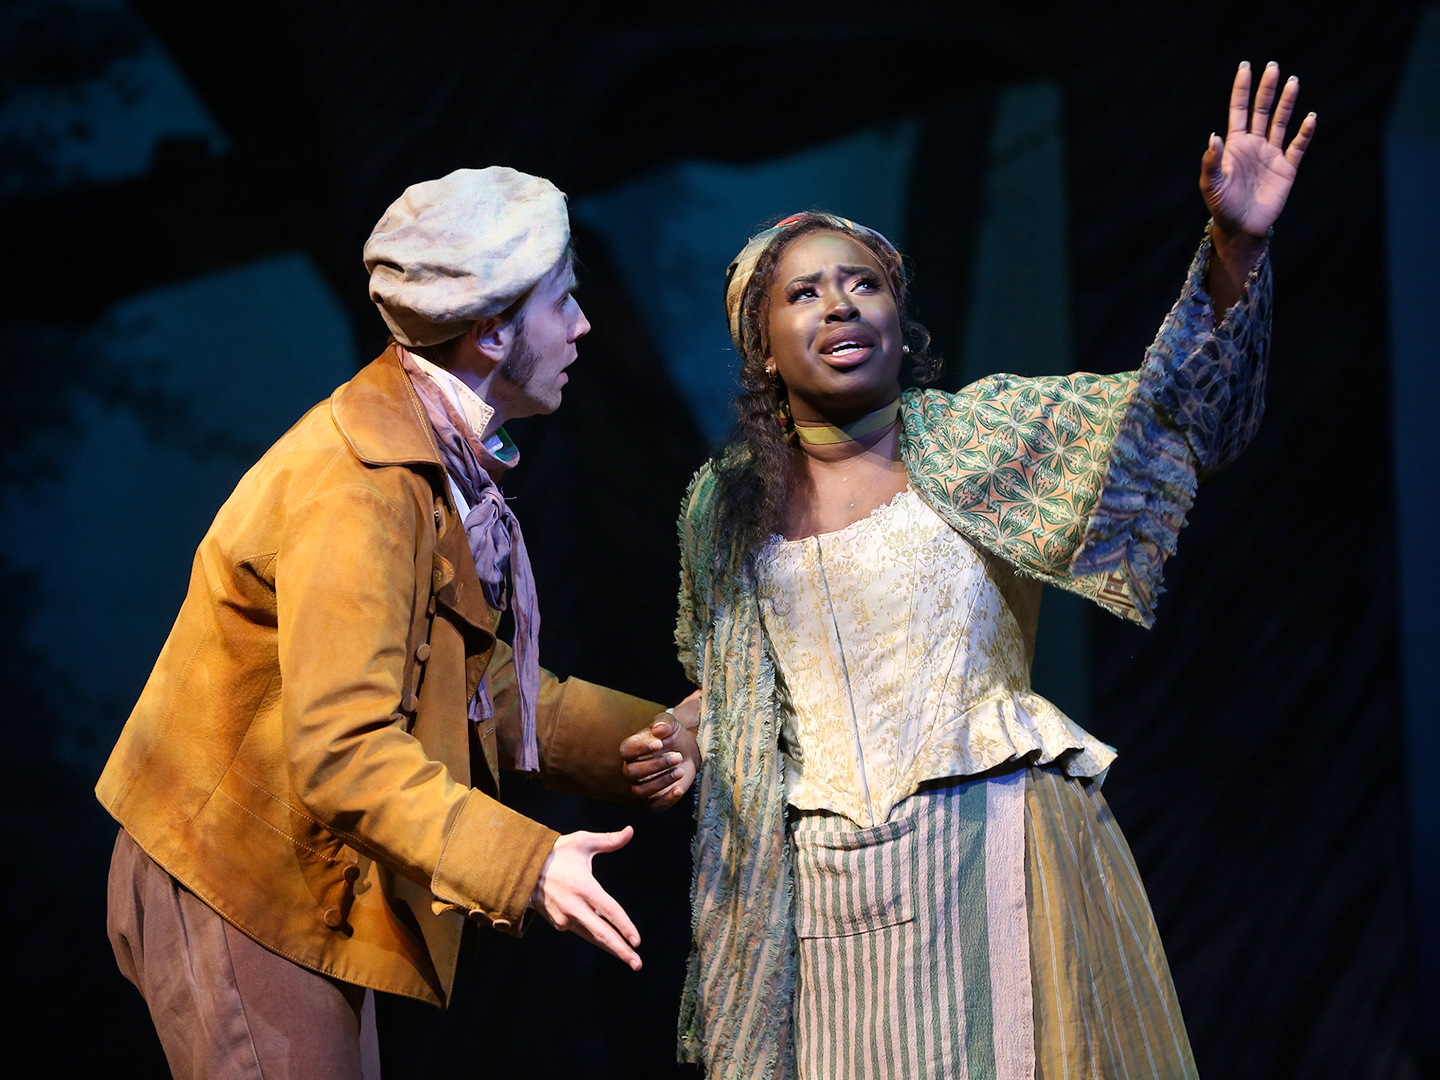 The Baker, wearing a yellow waistcoat, brown knee-length trousers and socks, green shoes and floppy baker's hat, stands next to an actress playing his wife. She wears a corseted top, a brightly patterned scarf of reds, blues and yellows on her head, and an ankle-length yellow skirt. He stands bewildered with mouth open while she looks to the skies with her hand extended.